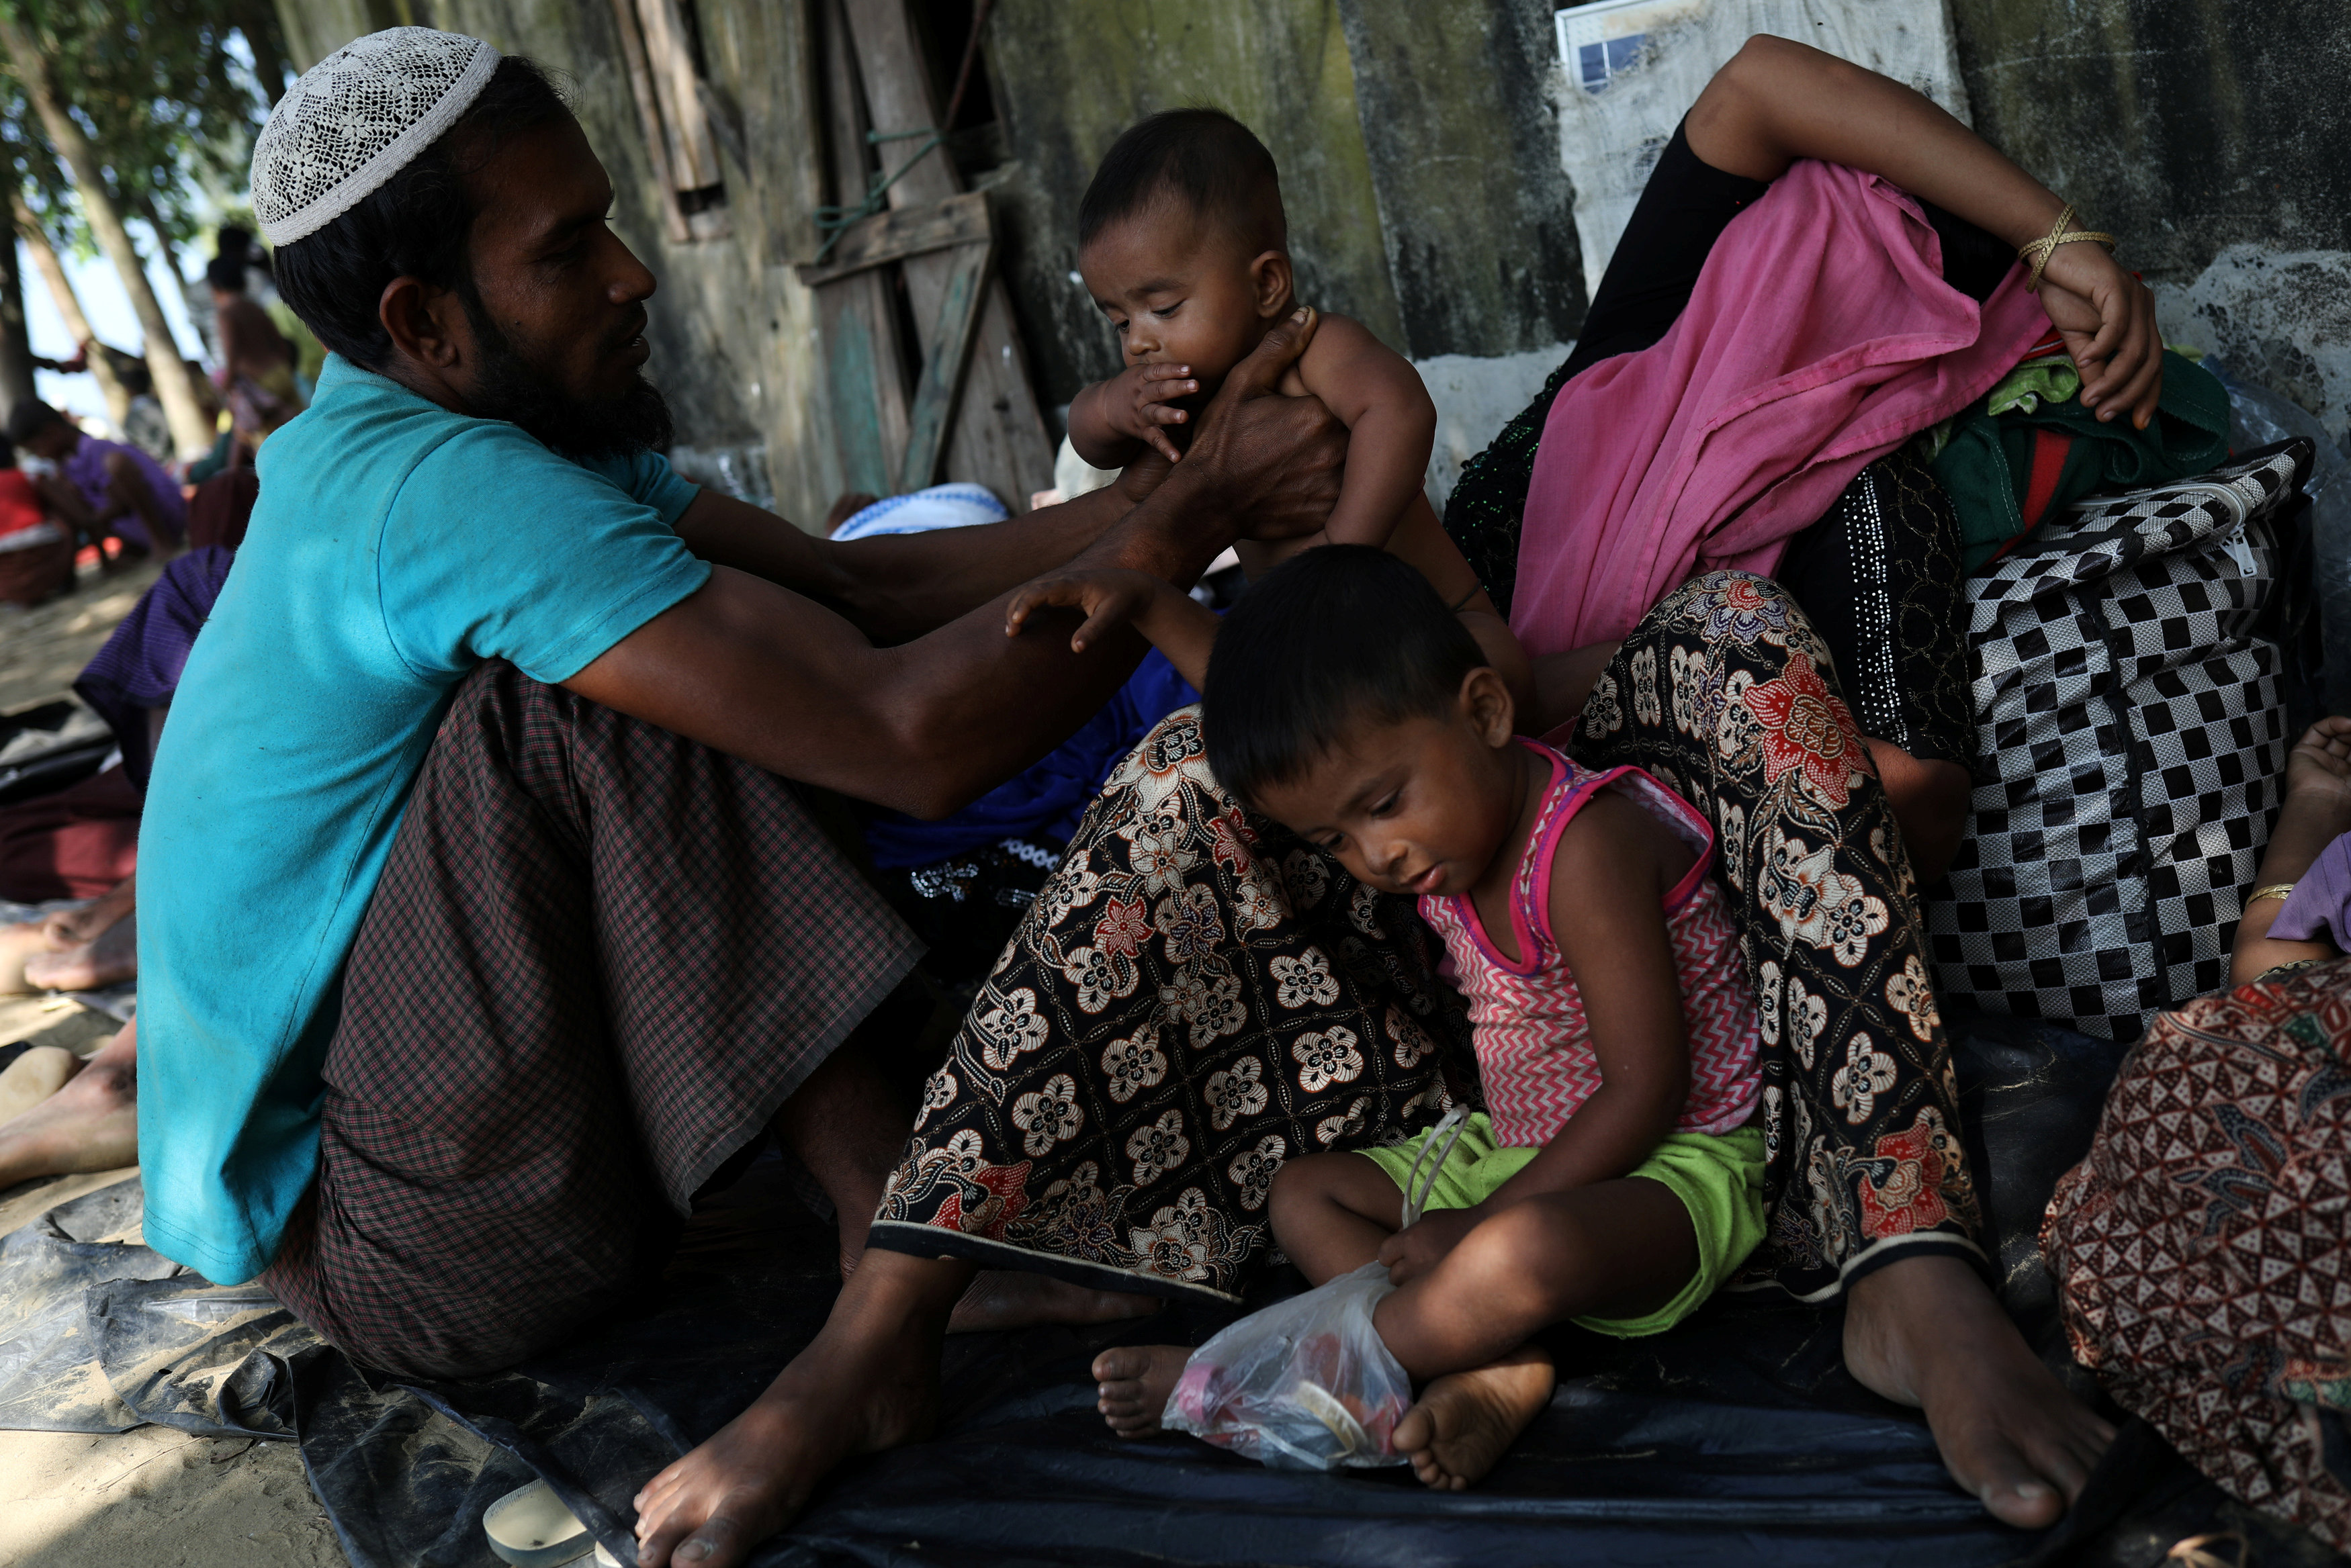 U.N. rights forum to hold special session on Myanmar Rohingya - U.N. sources